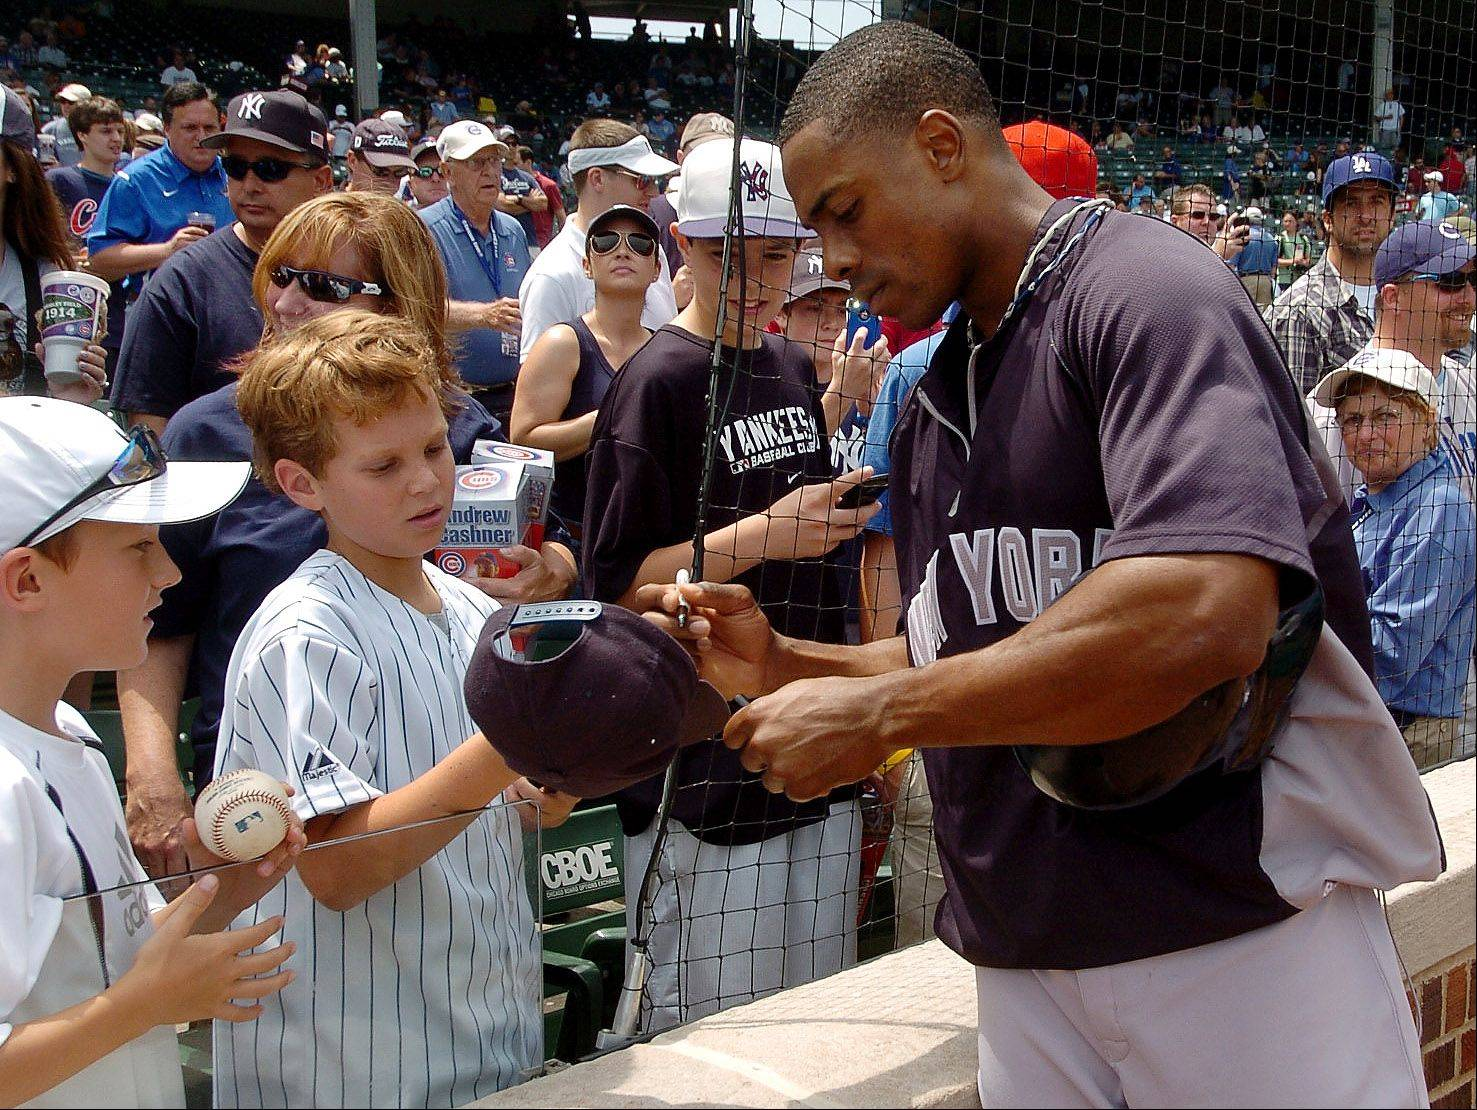 Bob Chwedyk/bchwedyk@dailyherald.comCurtis Granderson of the Yankees signs autographs for some youngsters before the Cubs vs. Yankees game at Wrigley Field.